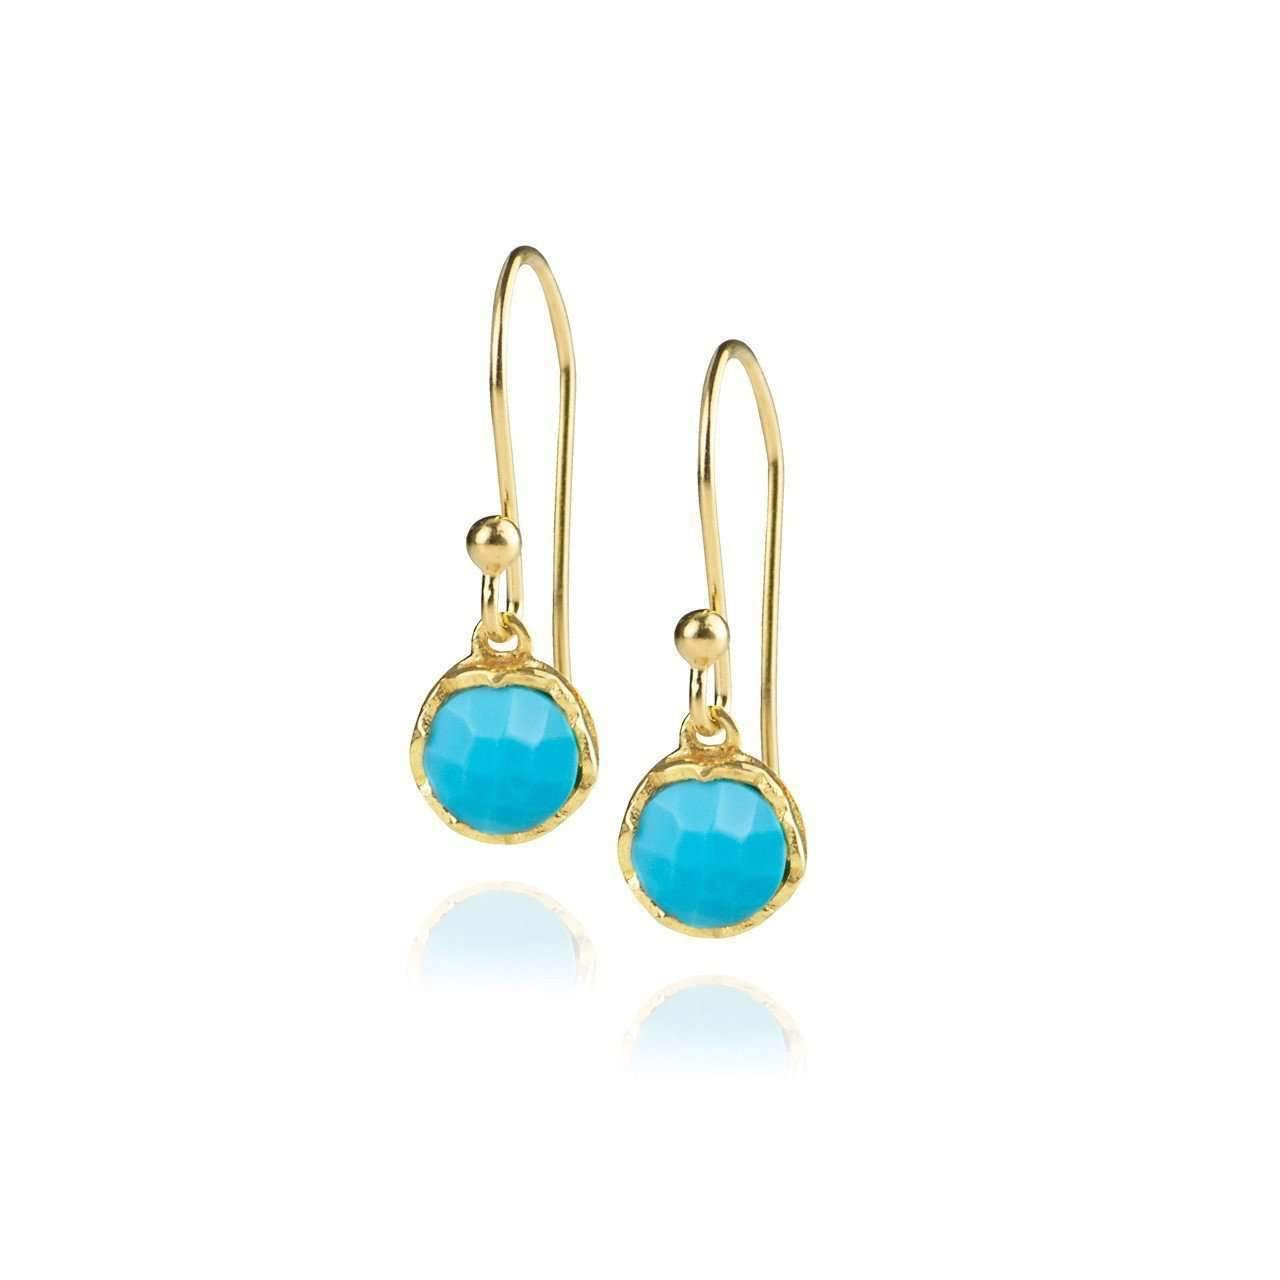 Zefyr Dosha Earrings Sterling Silver With Turquoise